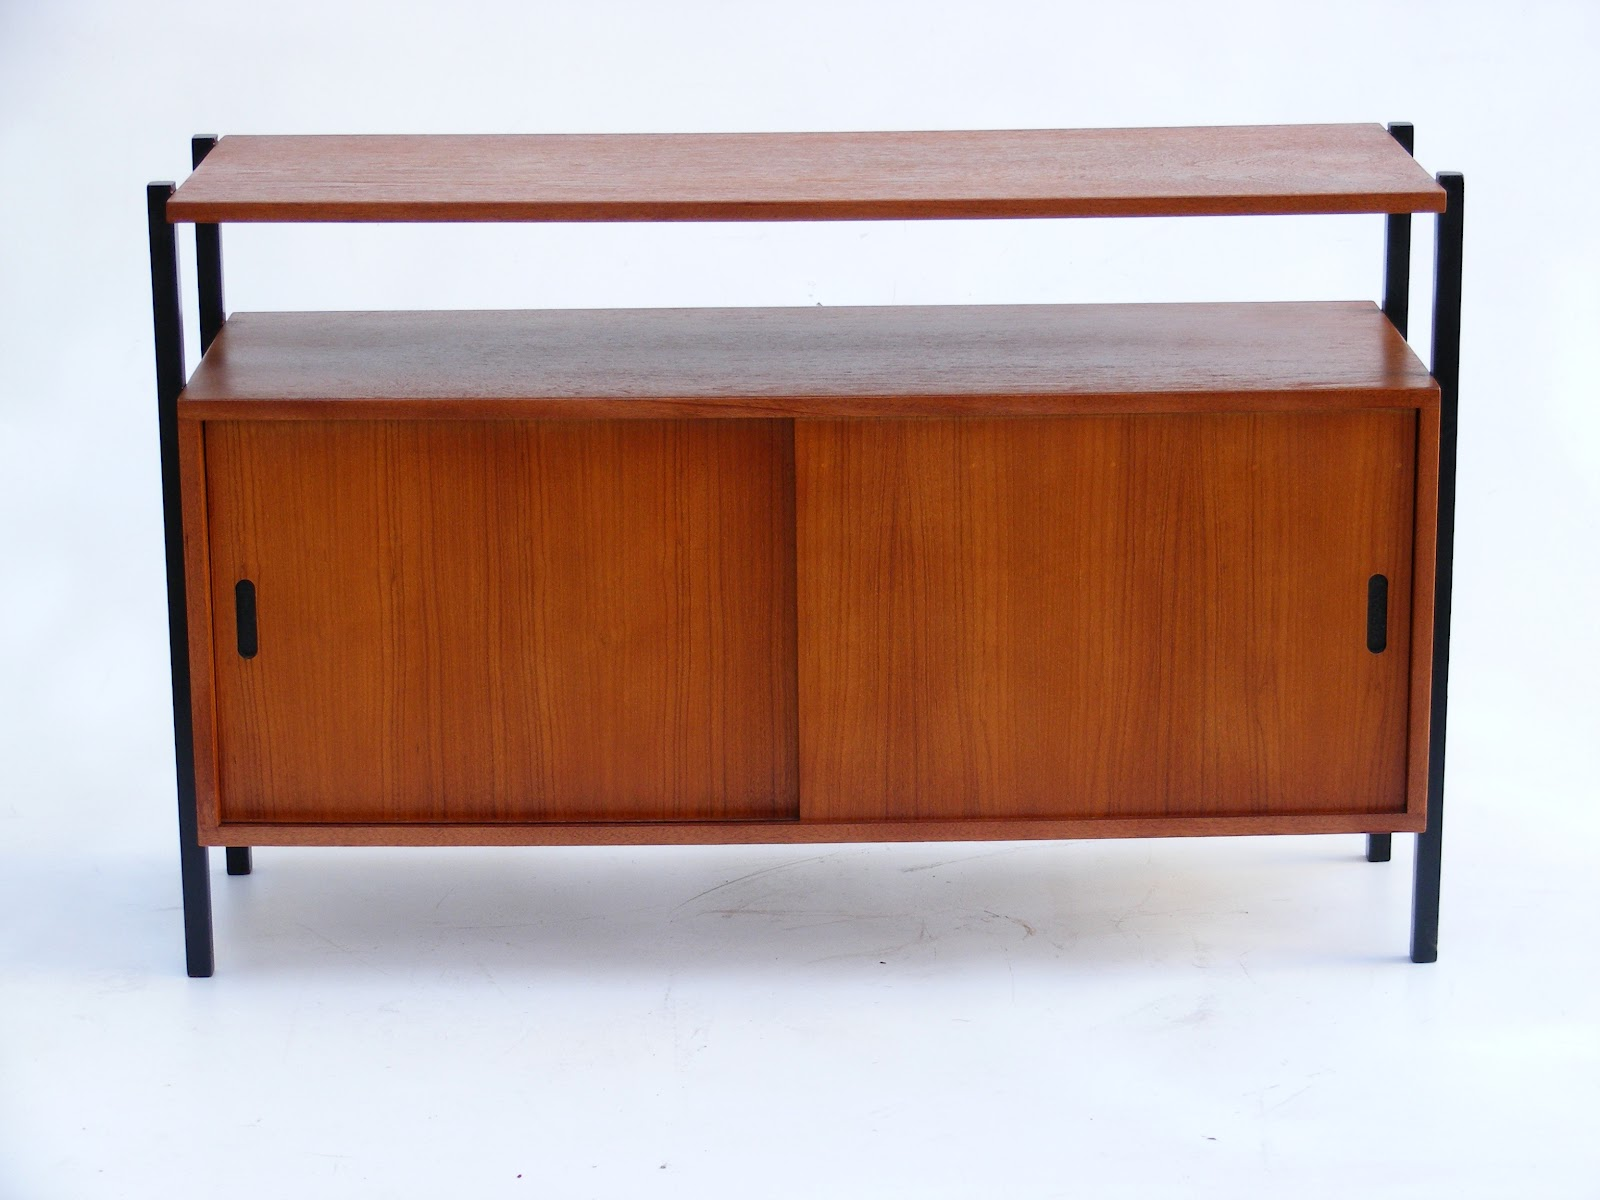 New furniture stock this week at Vamp  24 August 2012